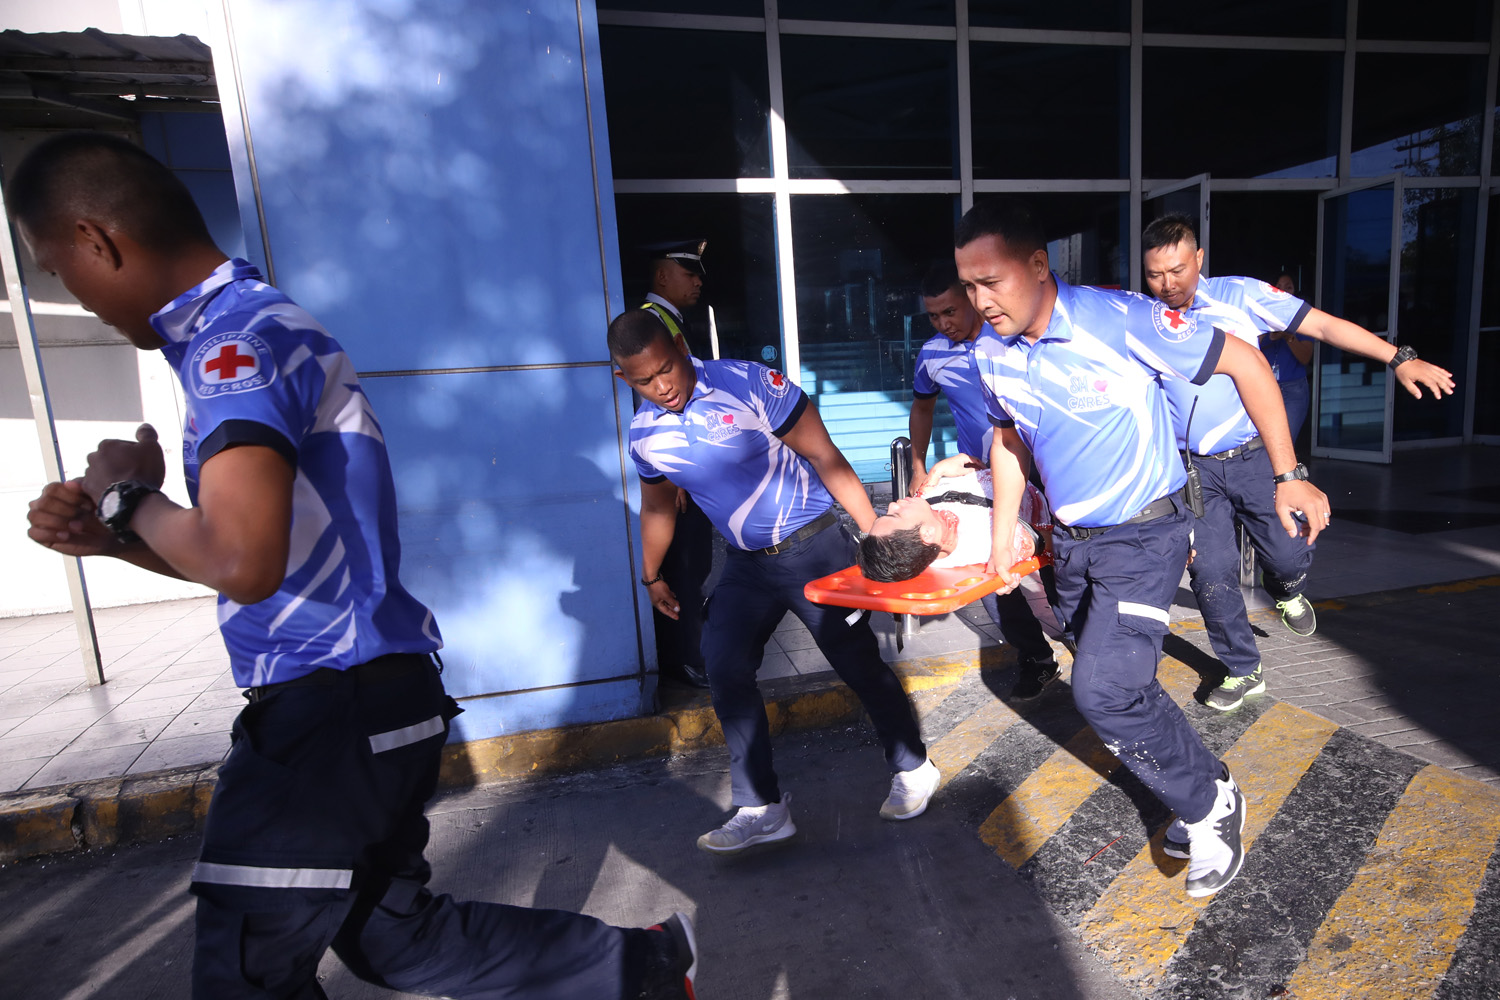 SAVE. A simulation shows how people would respond in case of disasters during the 1st Quarter Nationwide Simultaneous Earthquake drill at SM Fairview in Quezon City on Thursday, February 21. Photo by Darren Langit/Rappler